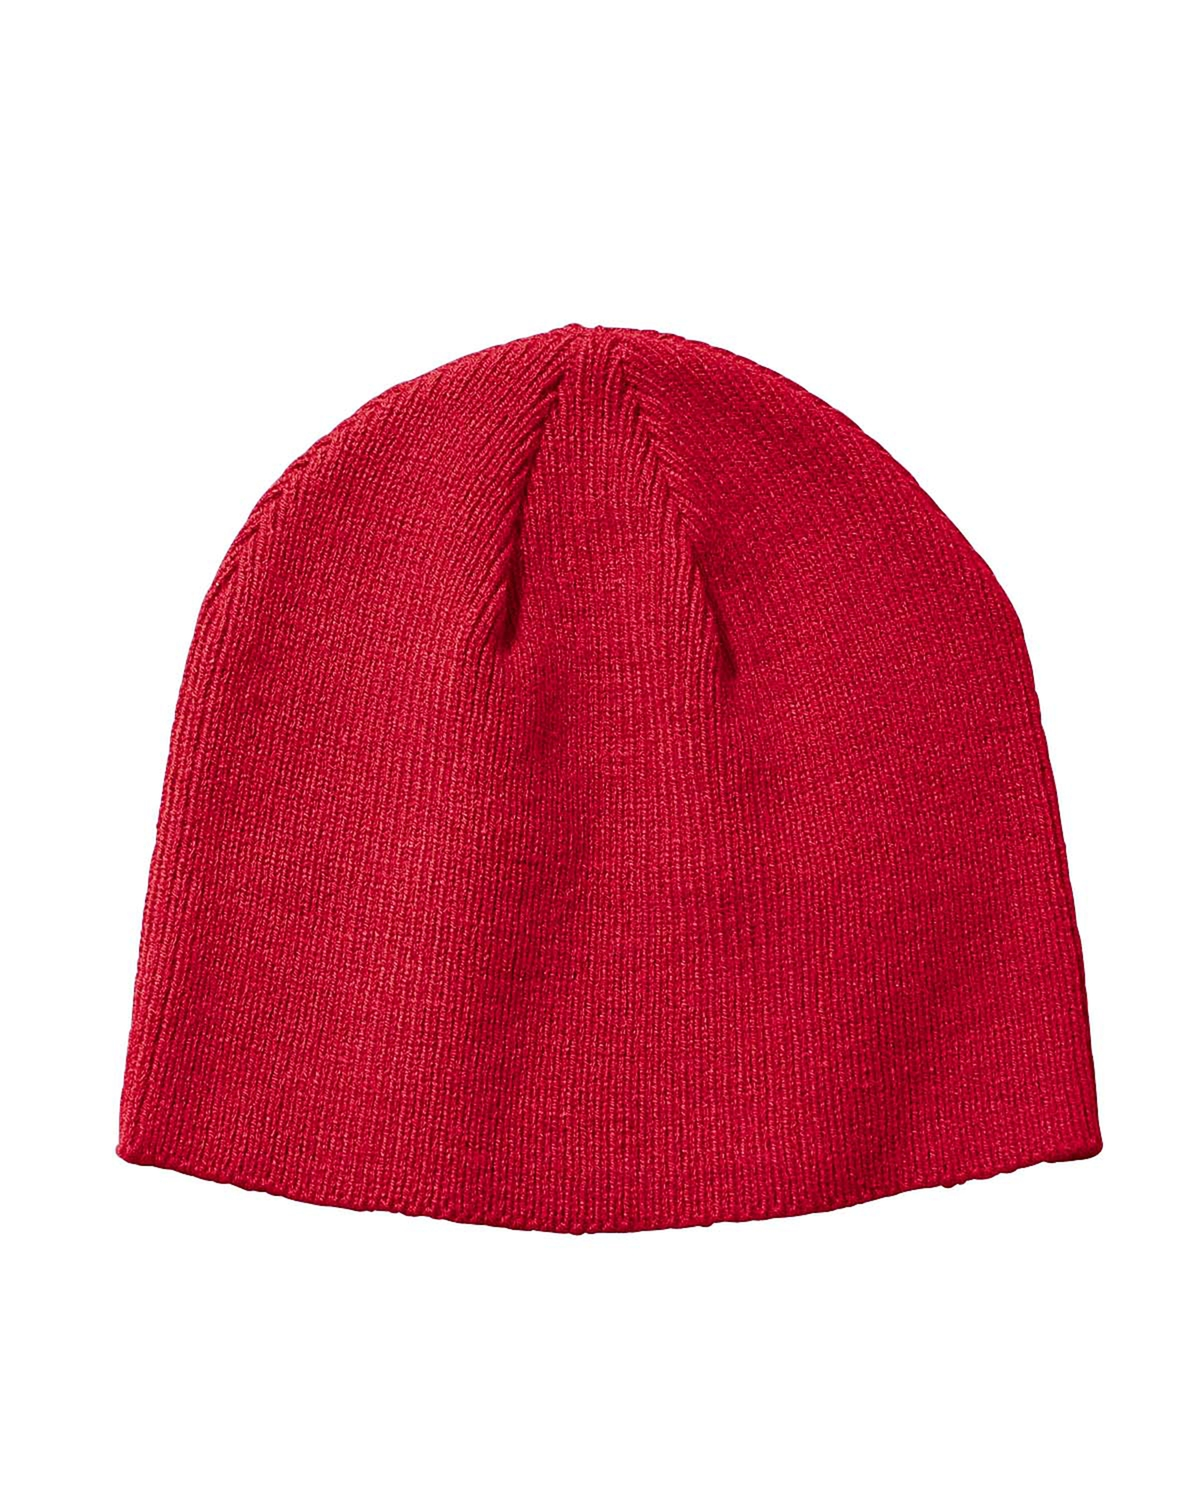 Big Accessories BX026 - Knit Beanie